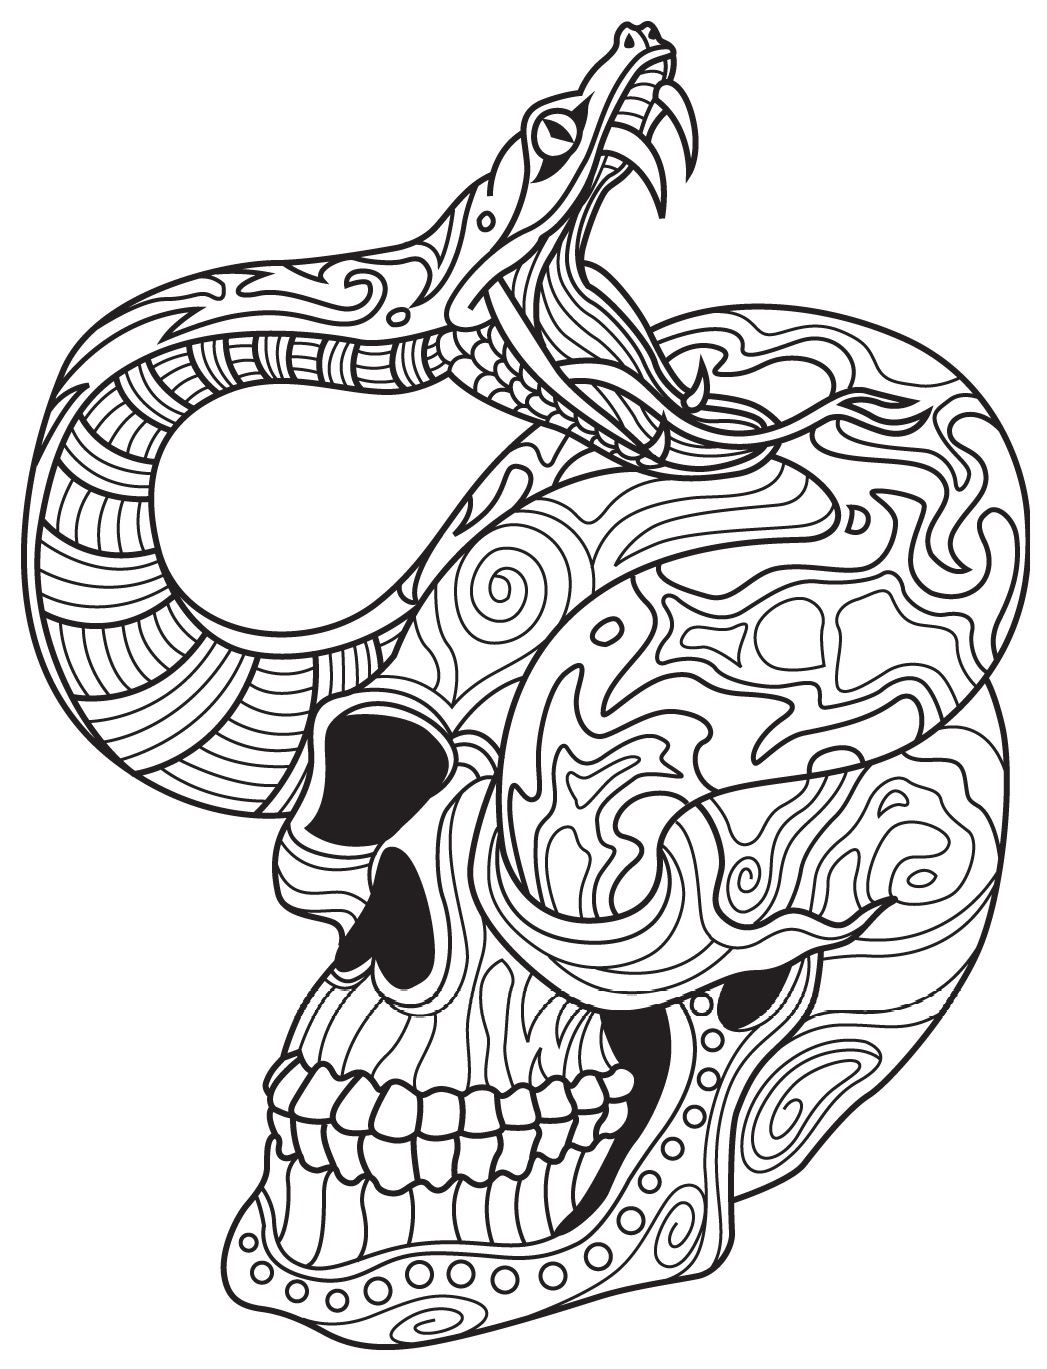 1047x1369 Snake and Skull Colorish coloring book app for adults by